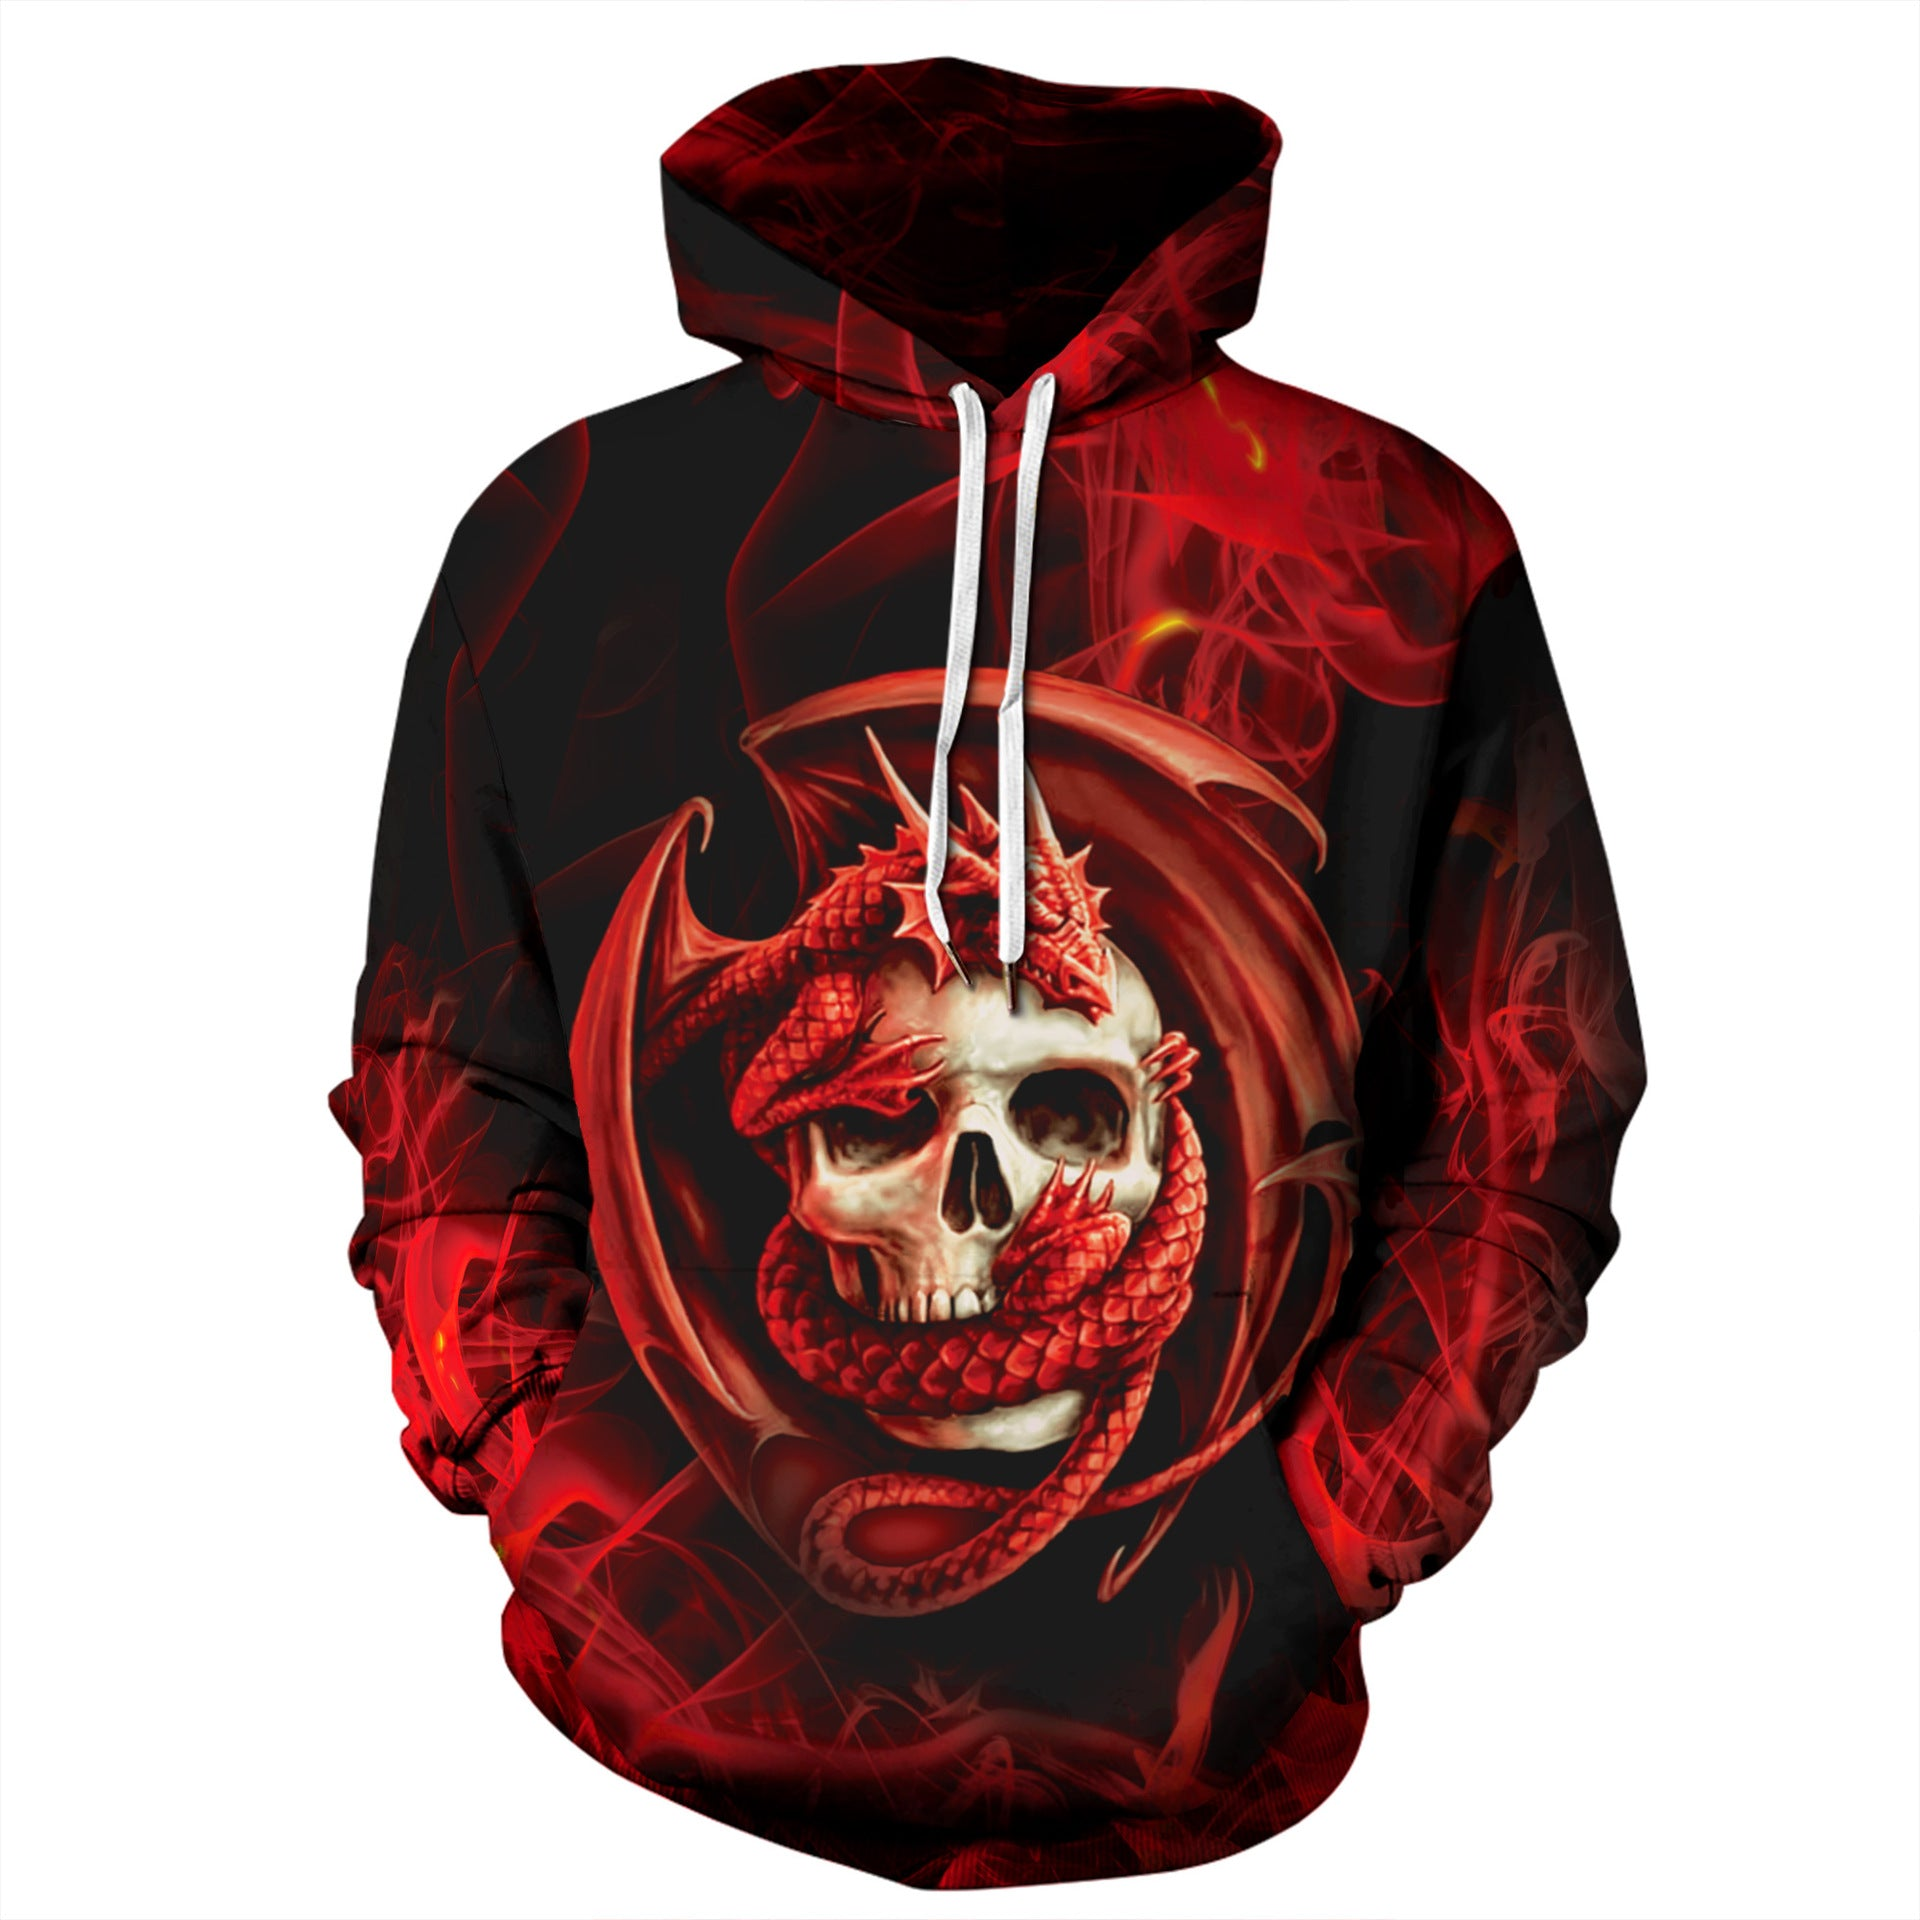 Ghost Fire Skull Hero Hoodie Long Sleeve Sweatshirt